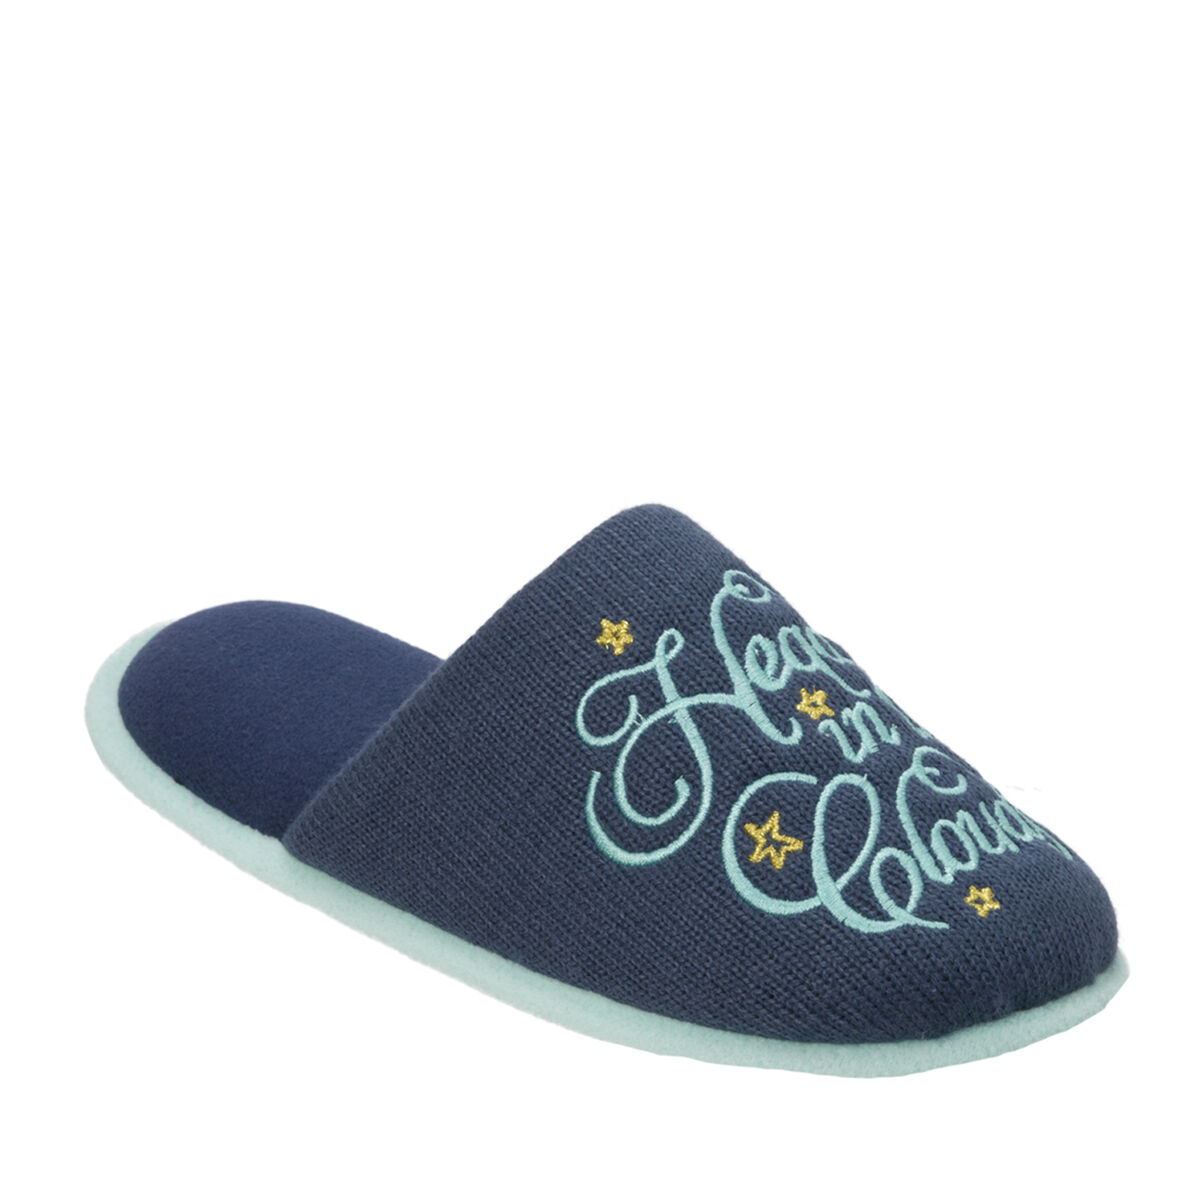 Women's Novelty Pile Scuff with Eye Mask